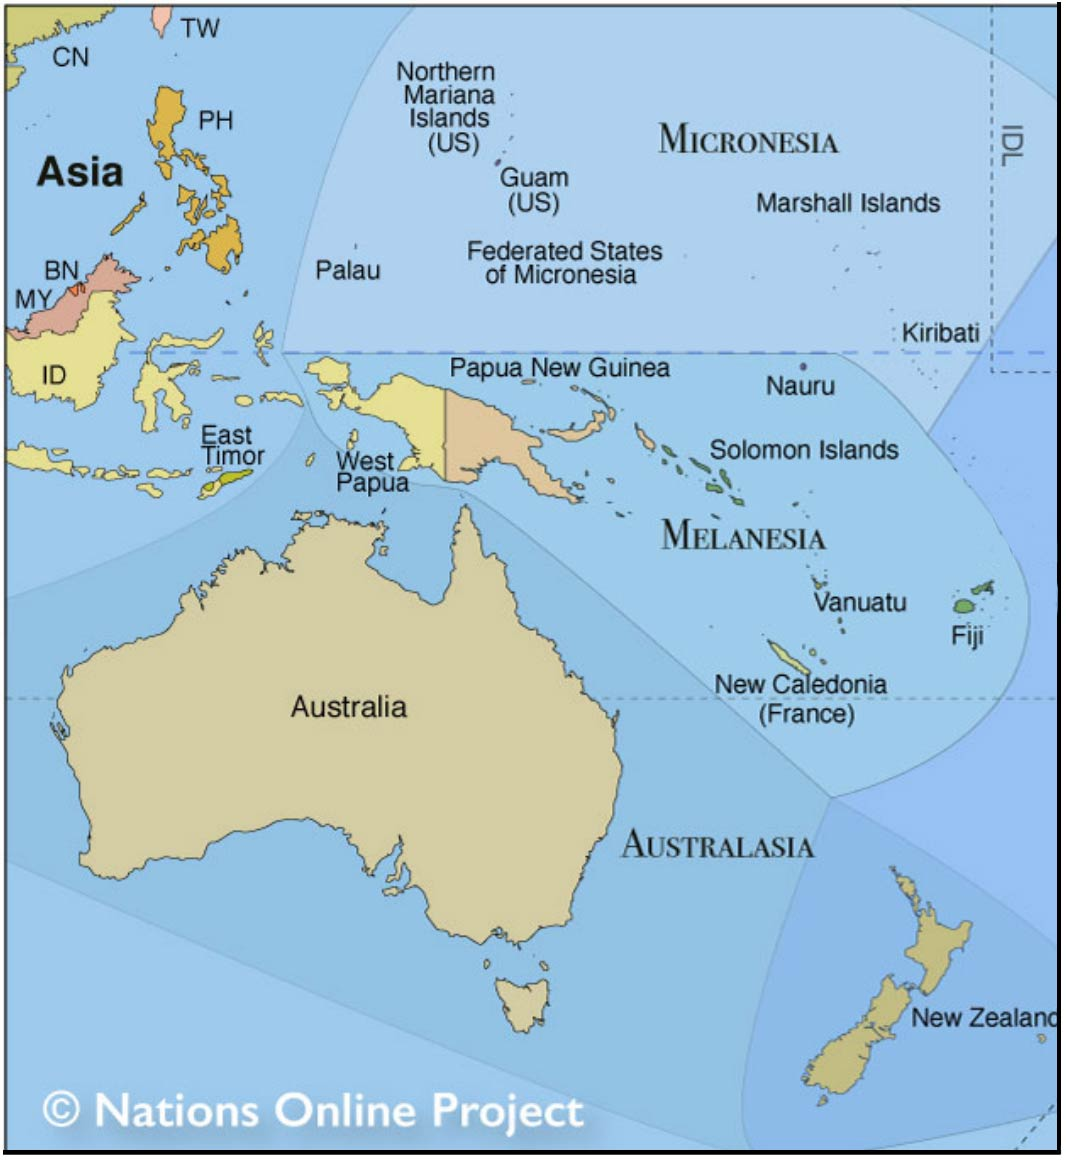 Capital Cities Of Australia Oceania Nations Online Project